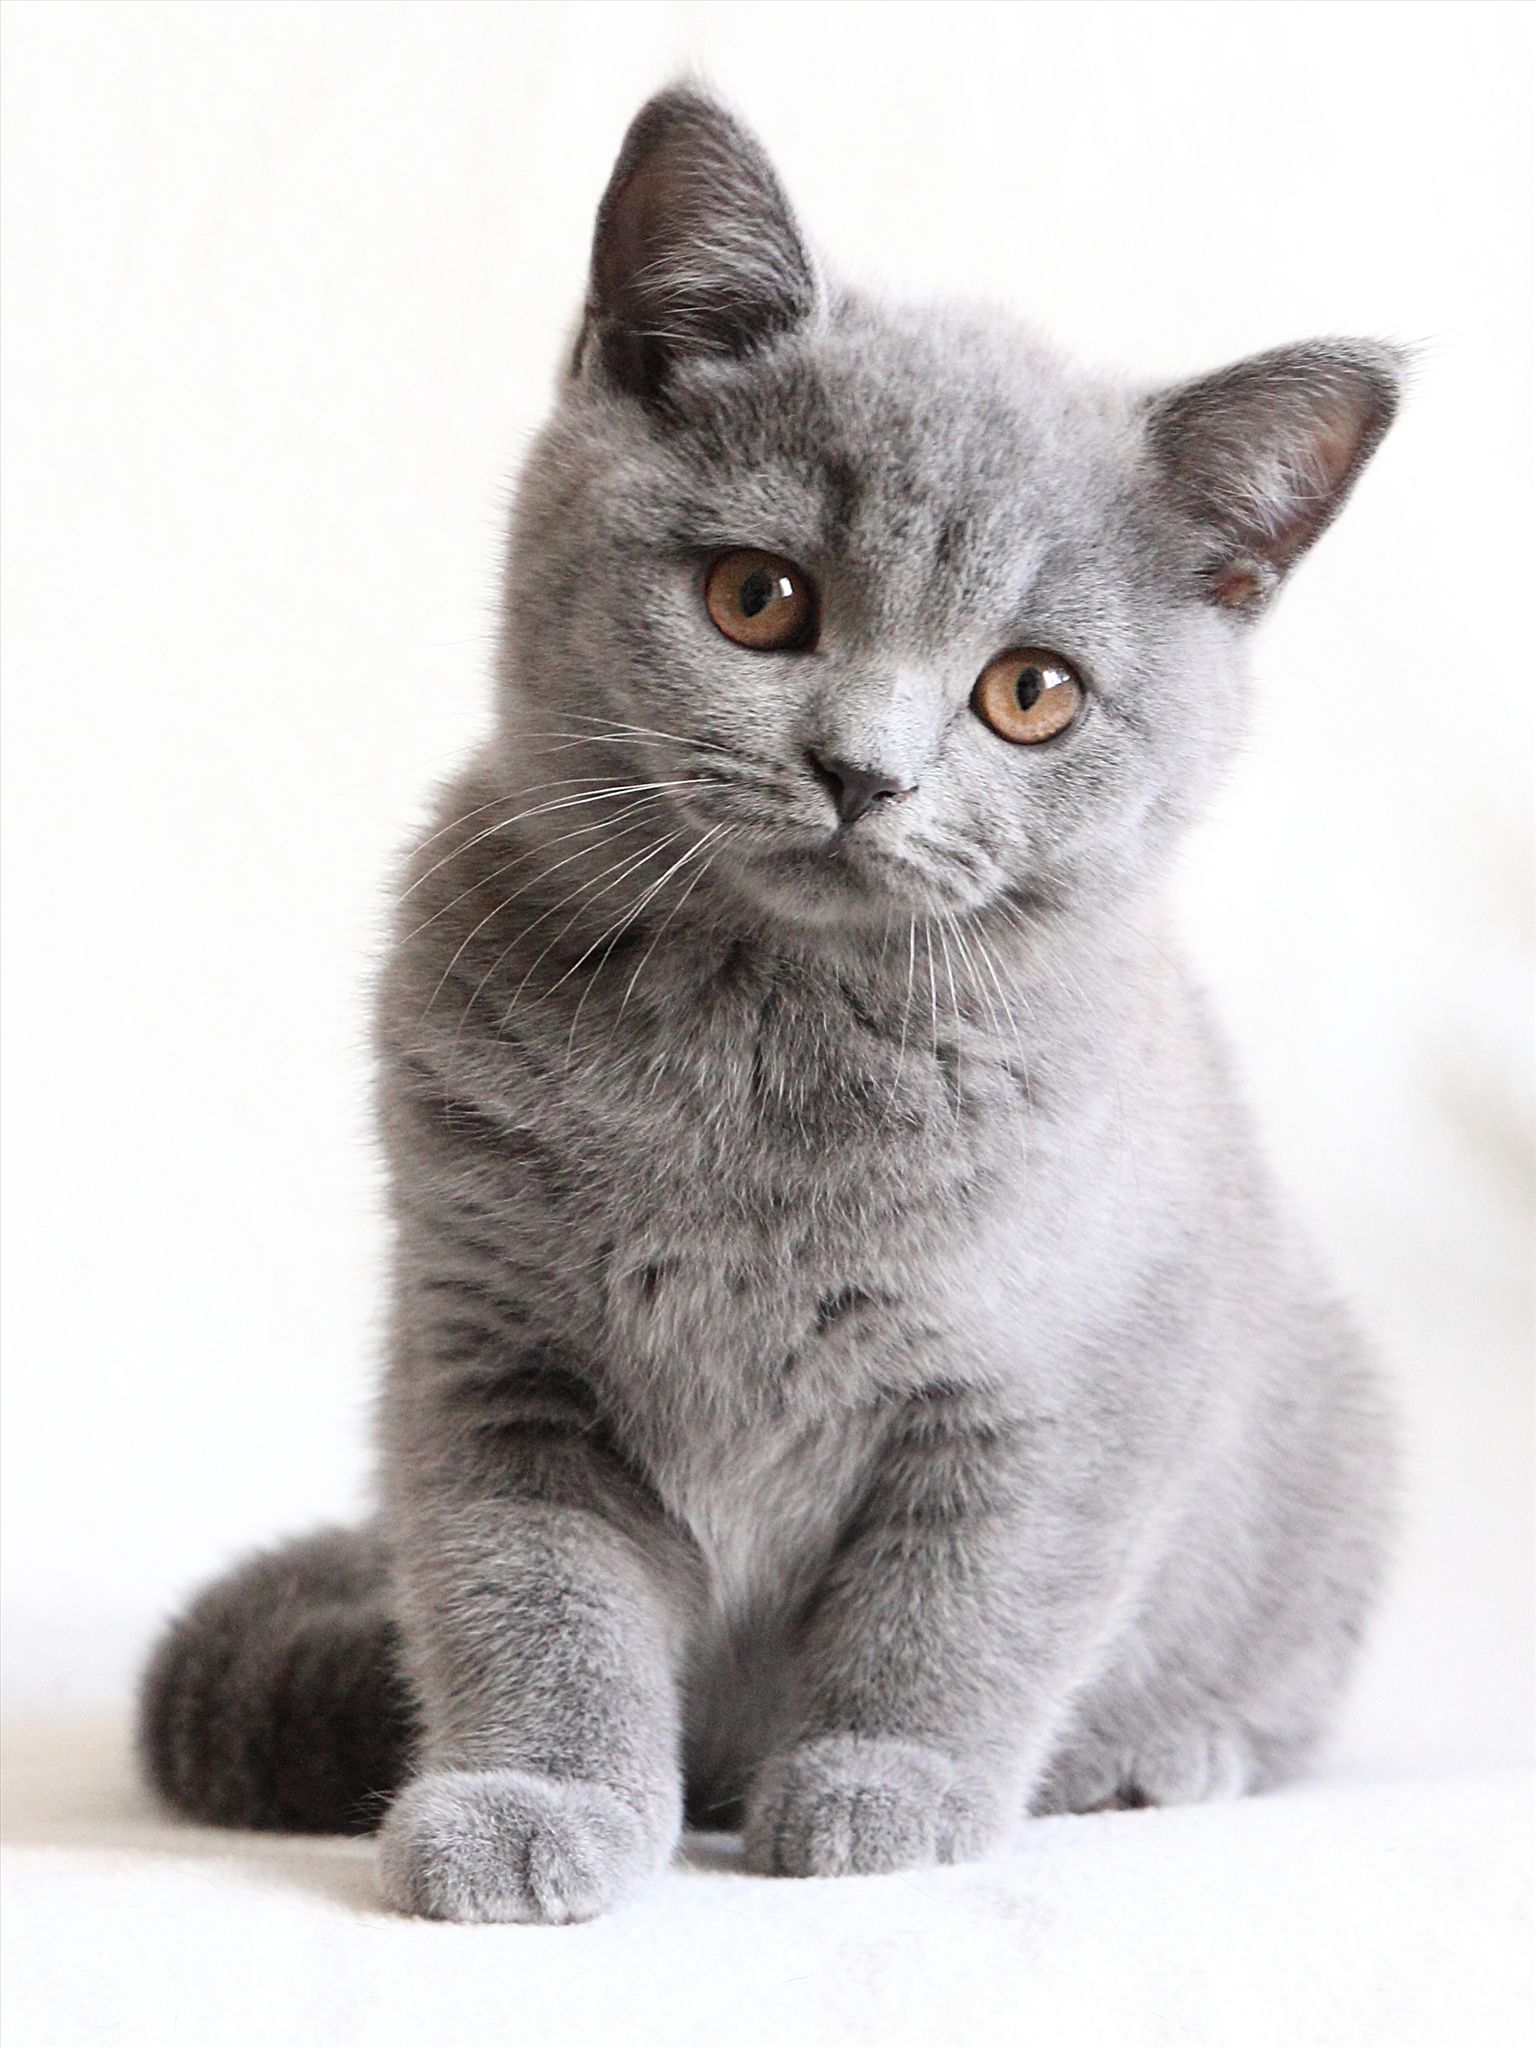 Very Interesting Post British Shorthair Kittens 11 Pictures Also Dompist Som Lot Of Interesting Thi British Shorthair Kittens Ragamuffin Cat Kittens Cutest